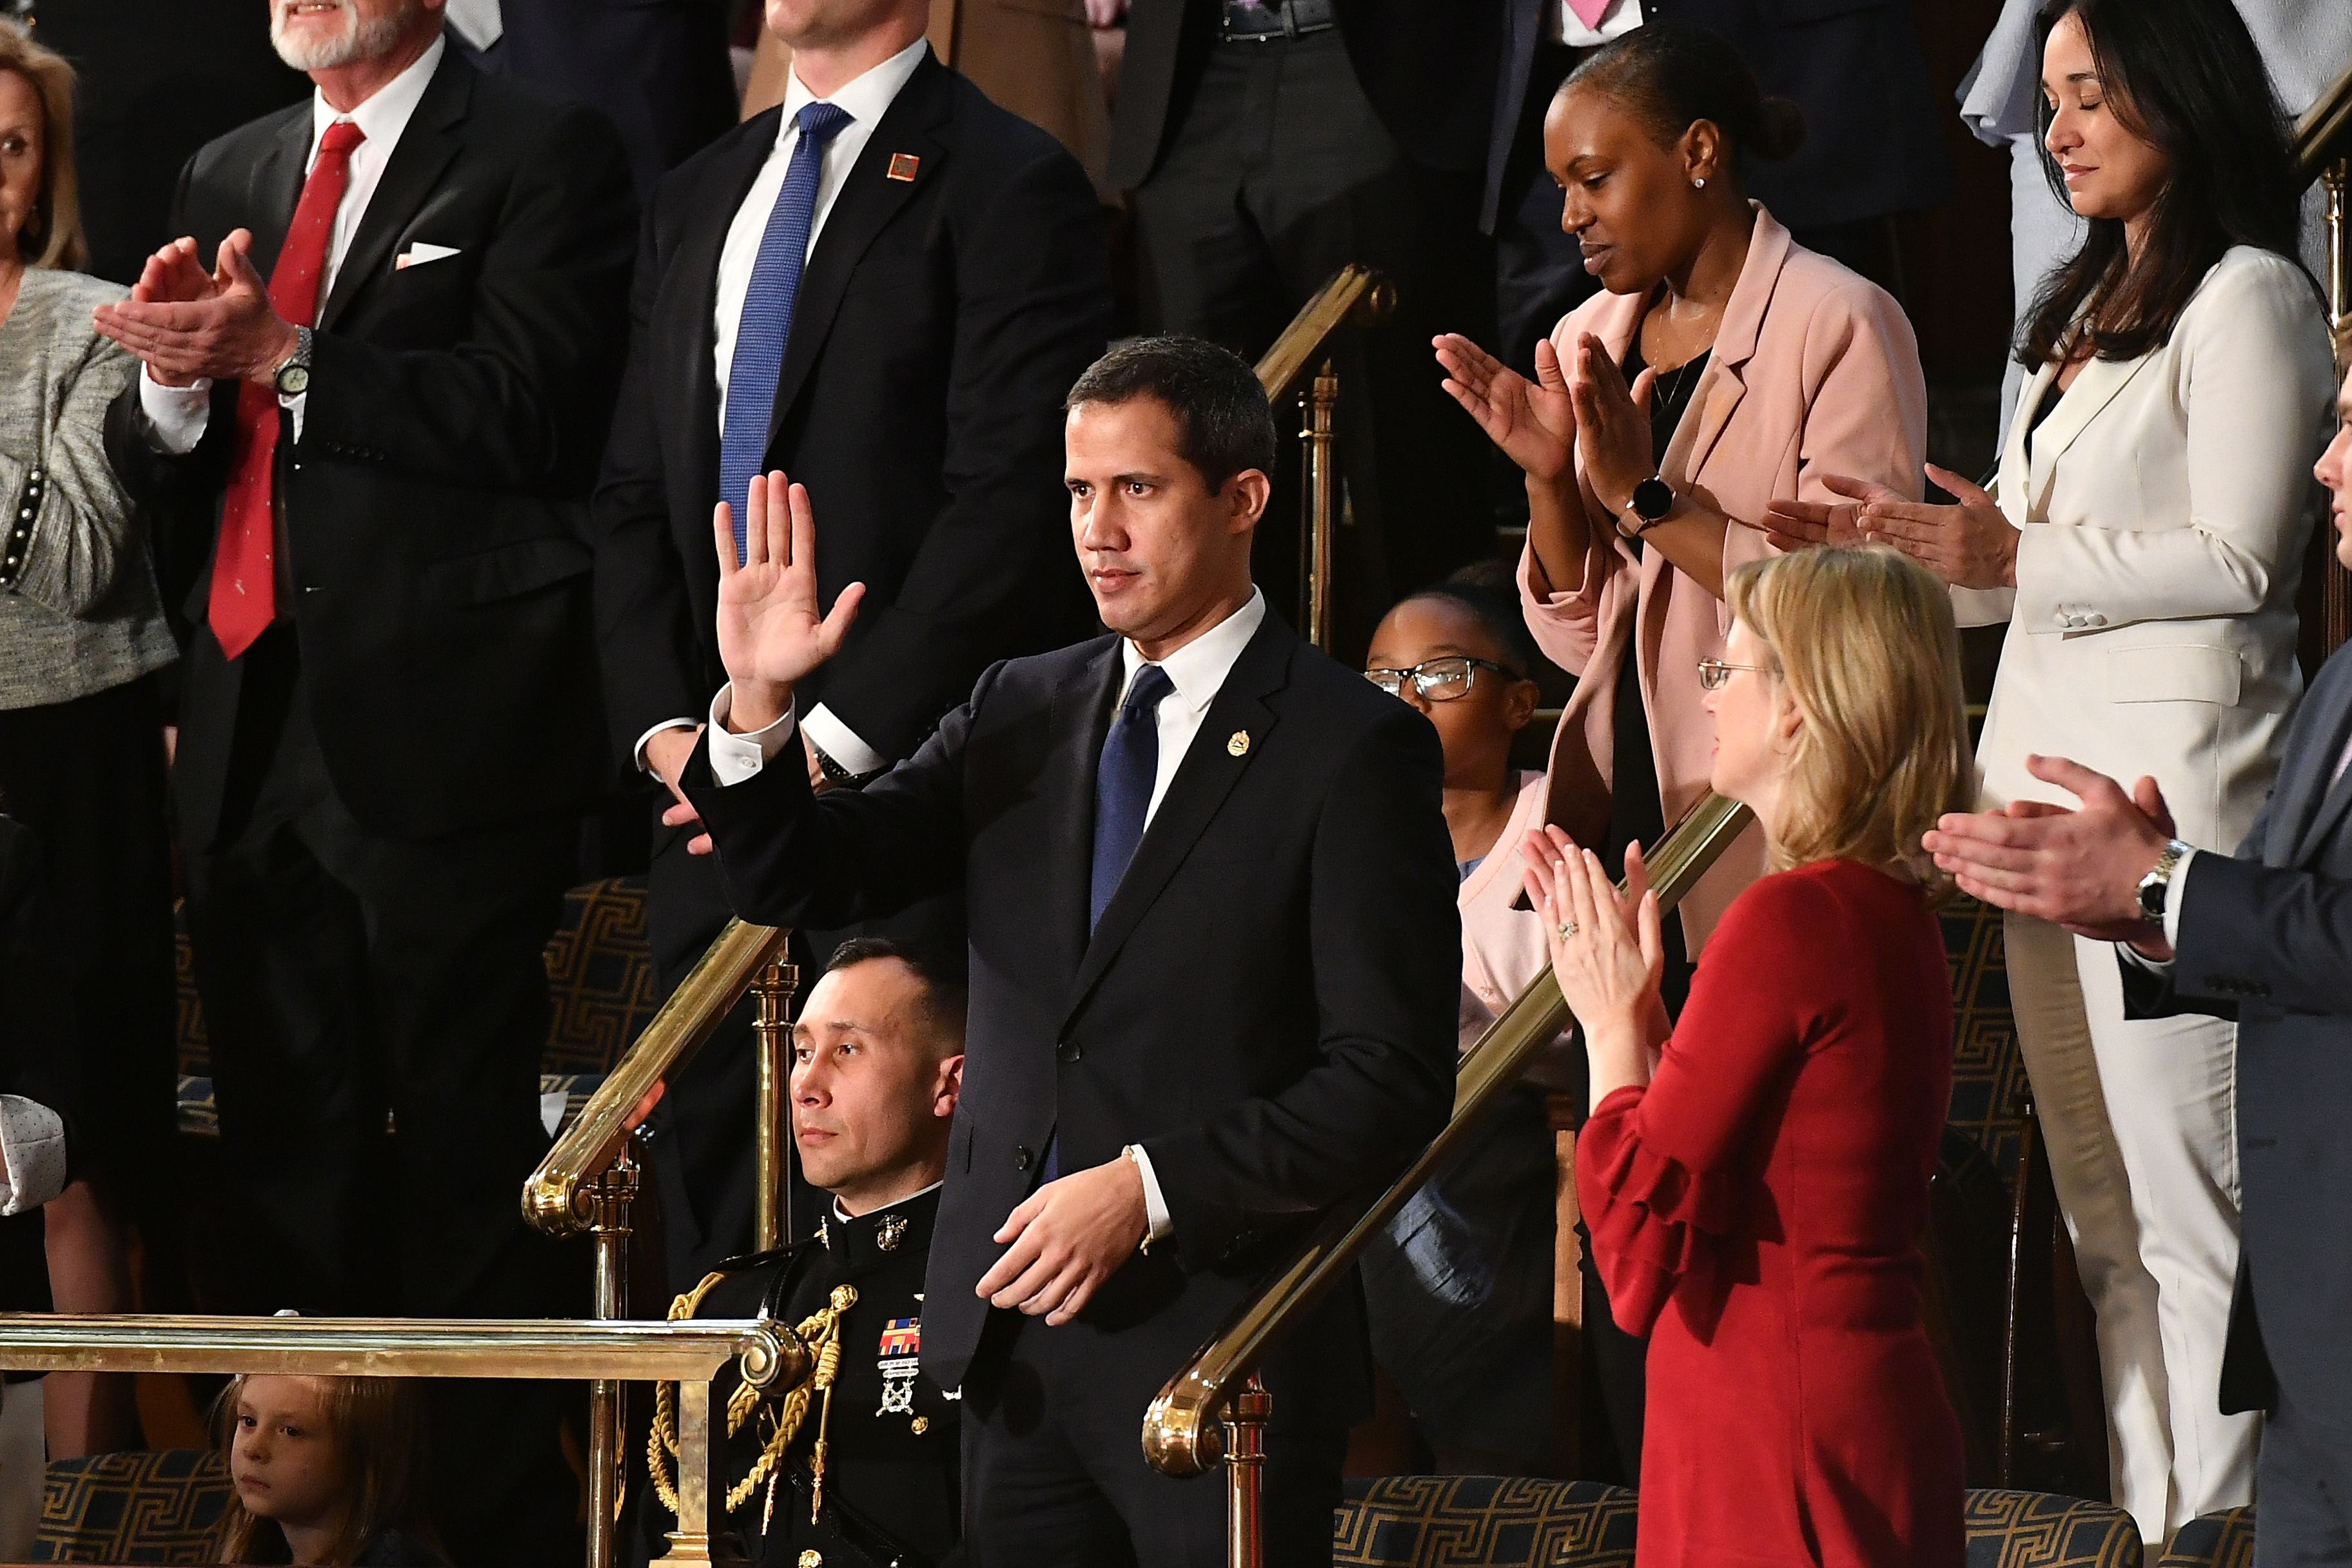 Venezuelan opposition leader Juan Guaido (C) waves as he is acknowledged by US President Donald Trump during his the State of the Union address at the US Capitol in Washington, DC, on February 4, 2020. (Mandel Ngan/AFP via Getty Images)